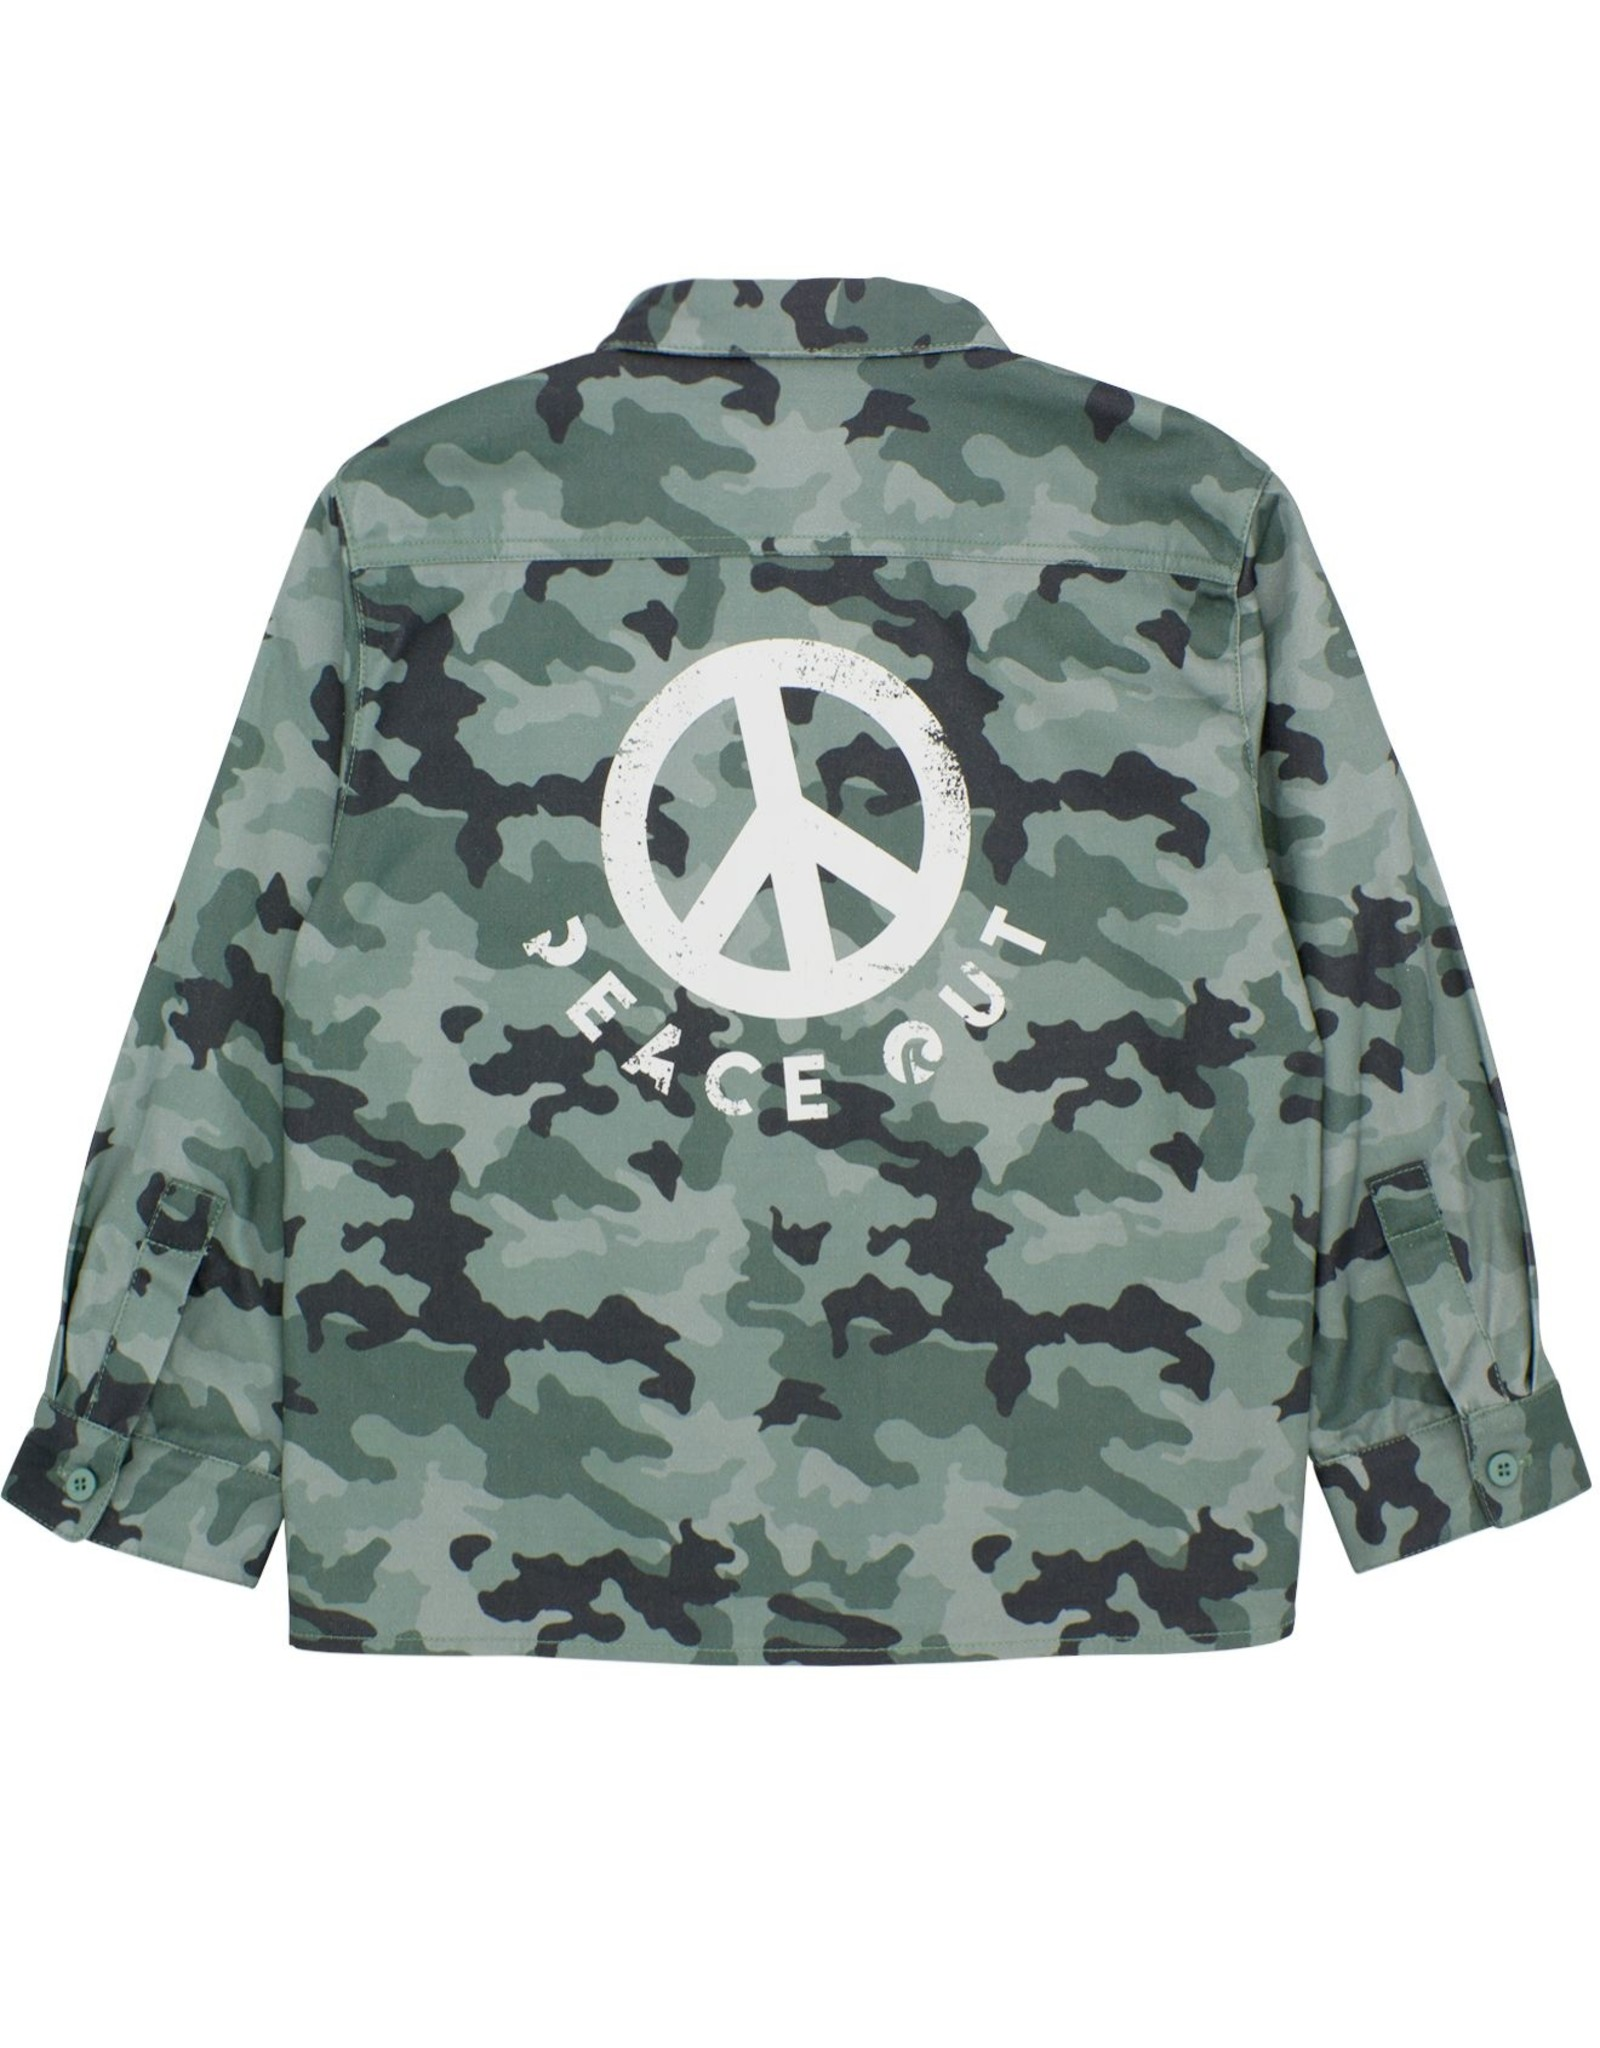 Feather 4 Arrow peace out jacket